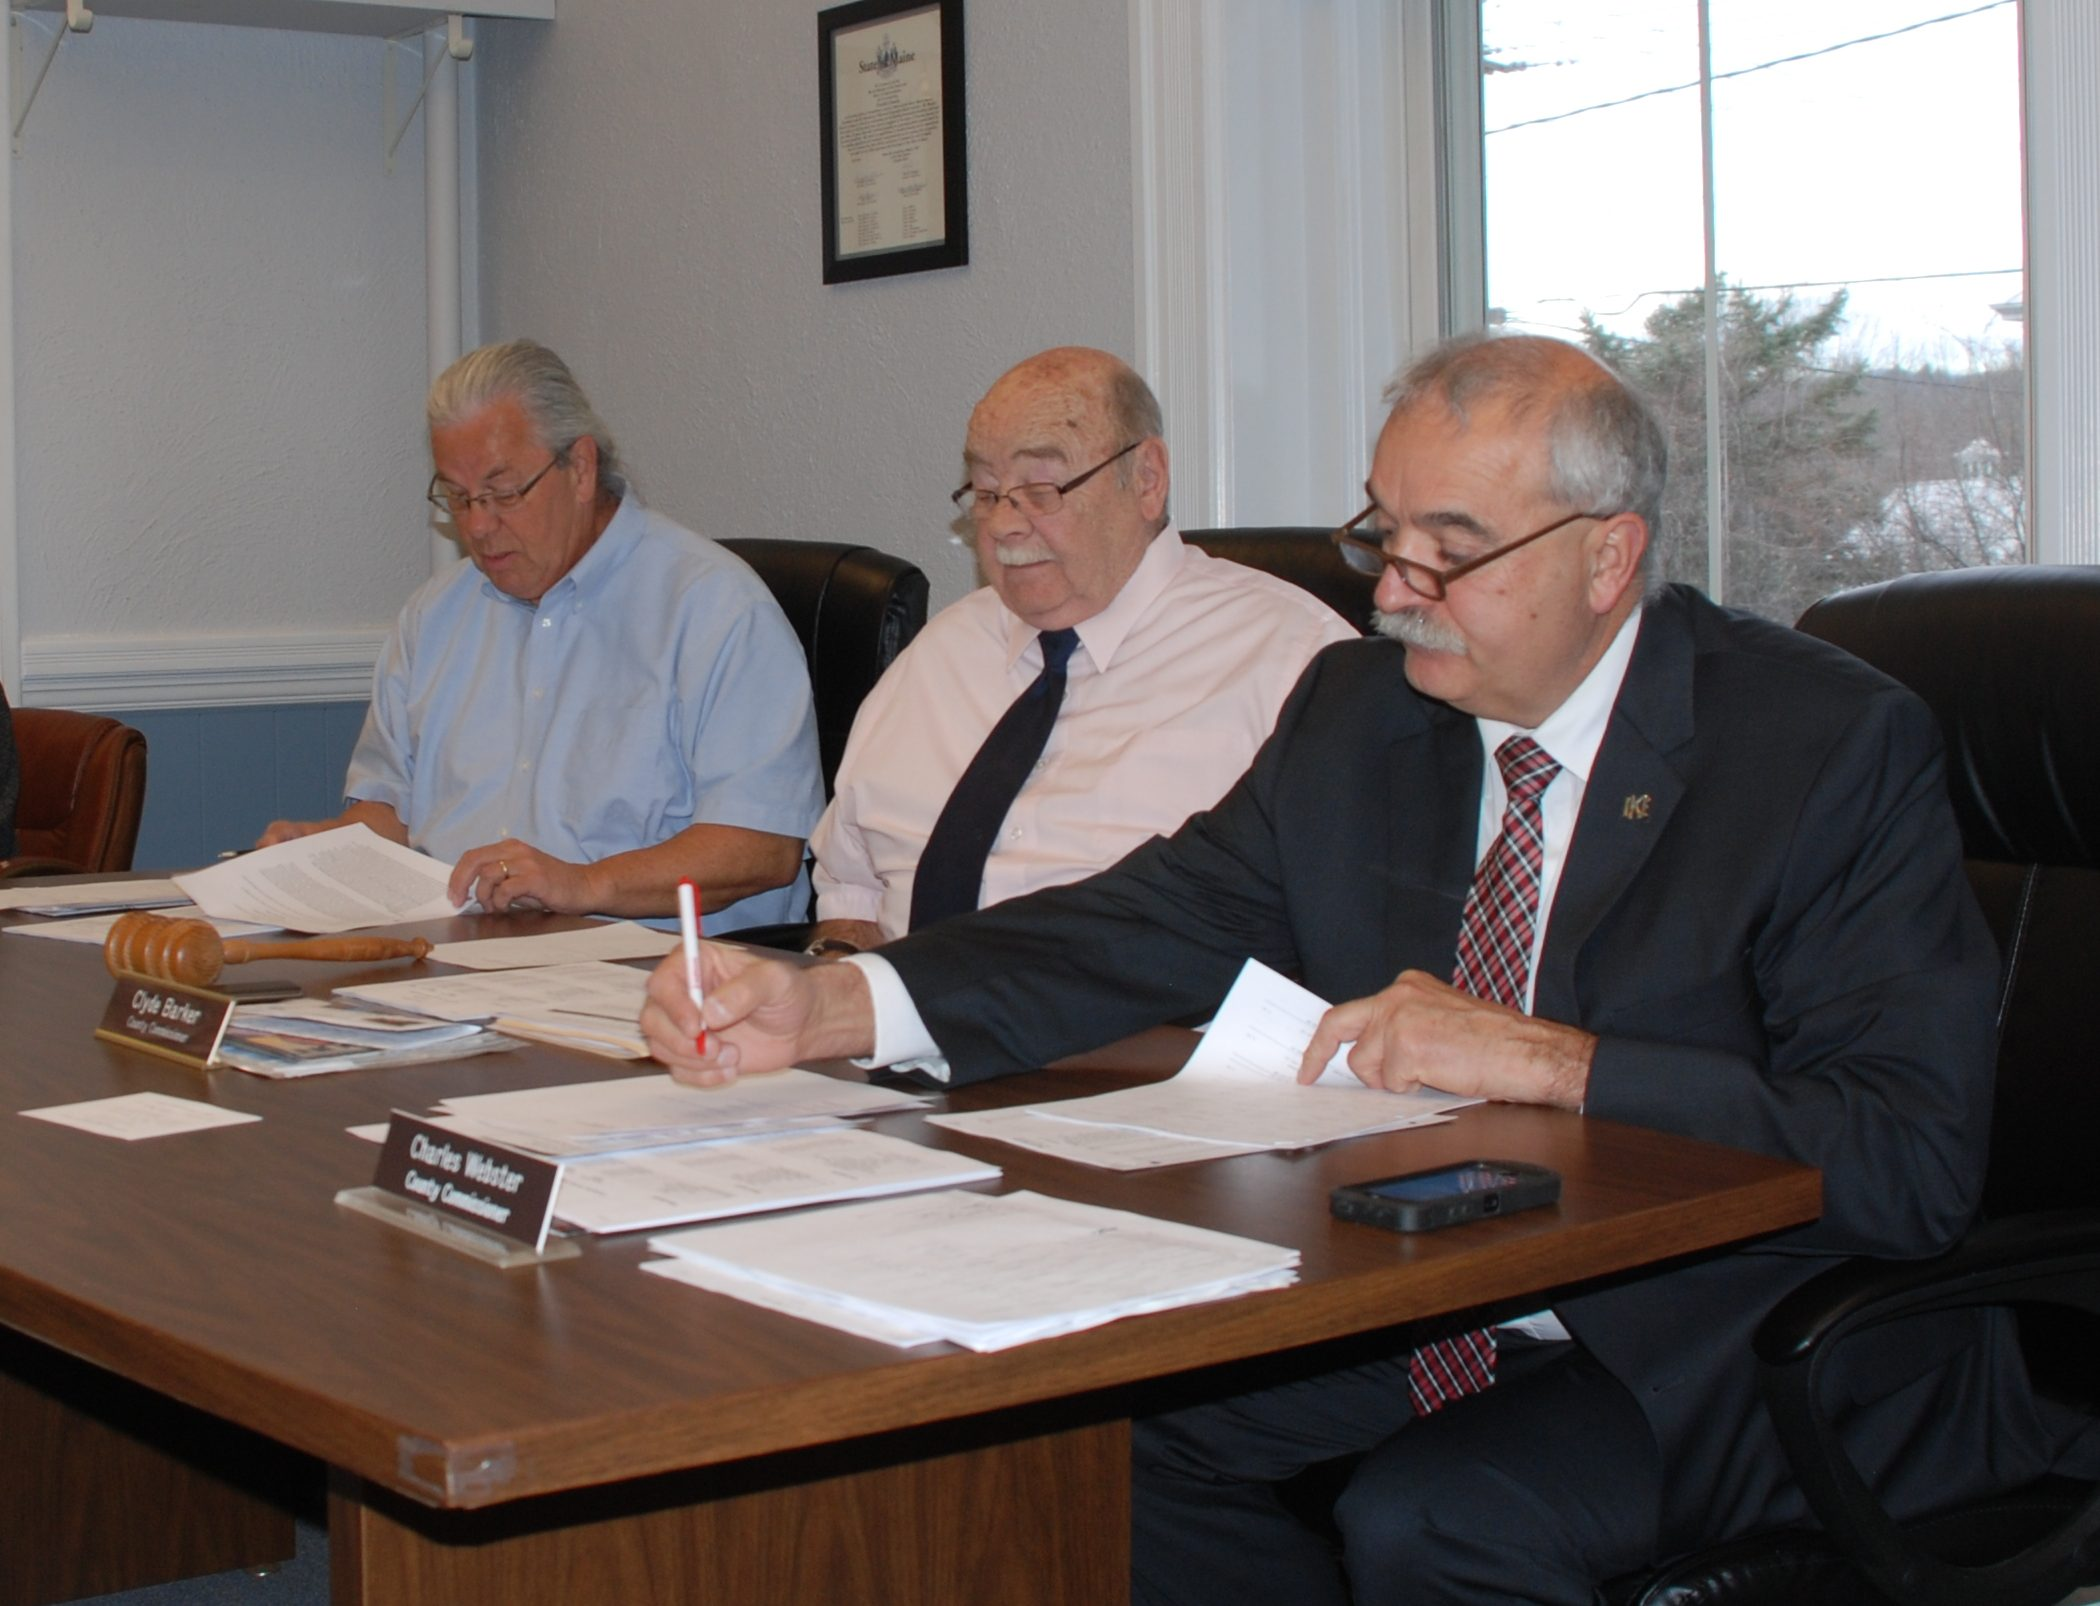 Franklin County commissioners, from left to right: